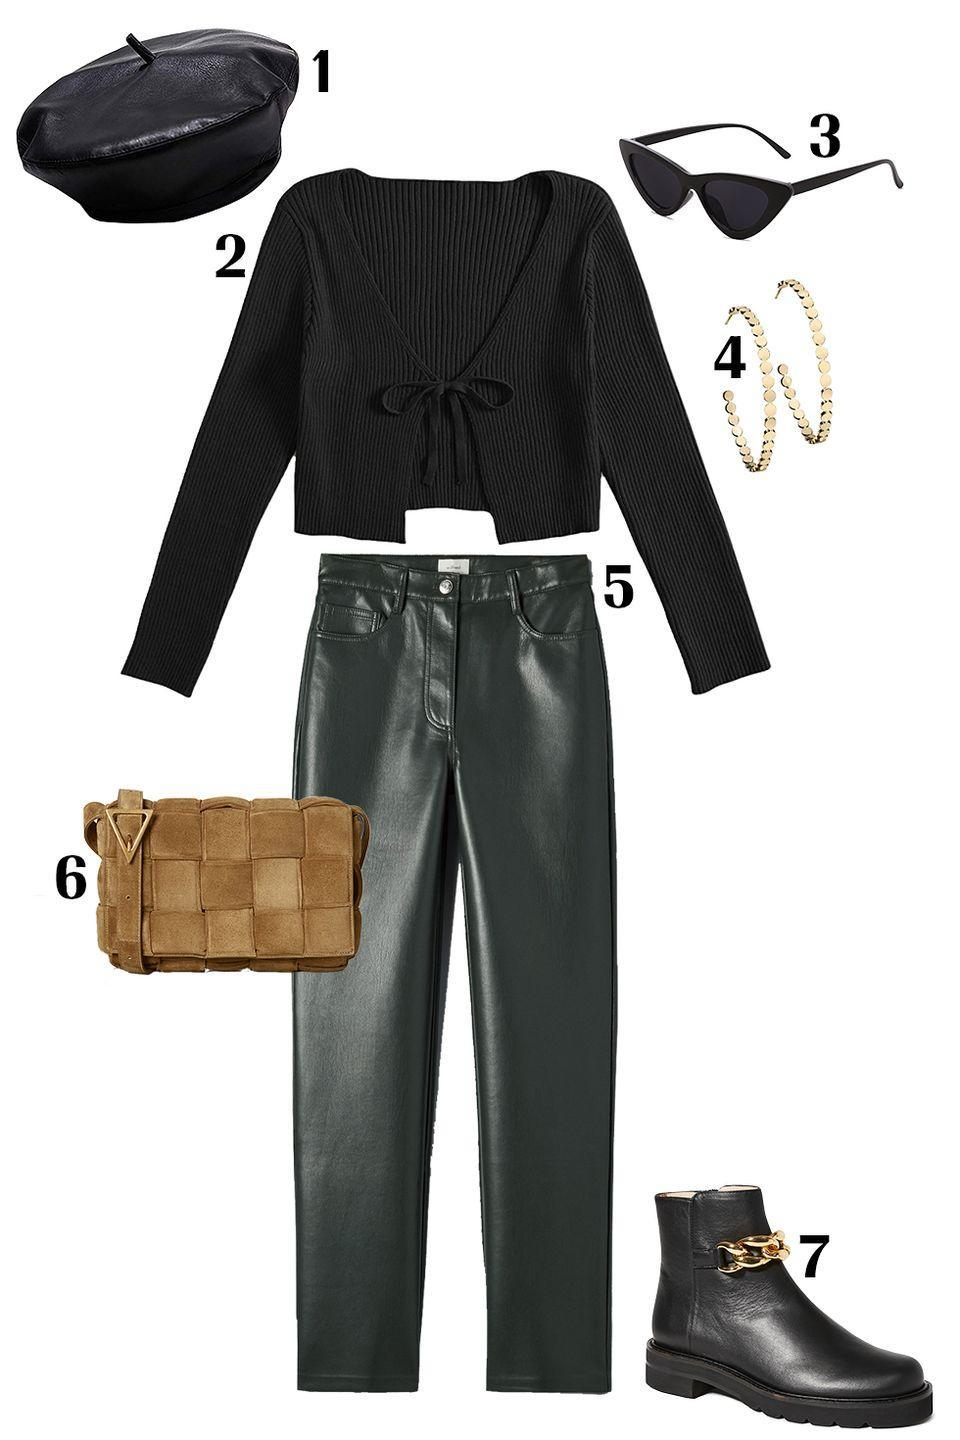 """<p>Go bold with a leather beret! Style yours with bottle-green leather pants and a cardigan that shows off some skin. Pair these pieces with booties with a heavy chain accent that lean into the edgy vibe of this look and finish off the look with your favorite <a href=""""https://www.marieclaire.com/fashion/a33833429/small-gold-hoop-earrings/"""" rel=""""nofollow noopener"""" target=""""_blank"""" data-ylk=""""slk:hoop earrings"""" class=""""link rapid-noclick-resp"""">hoop earrings</a> and <a href=""""https://www.marieclaire.com/fashion/g35120846/best-sunglasses-on-amazon/"""" rel=""""nofollow noopener"""" target=""""_blank"""" data-ylk=""""slk:sunnies"""" class=""""link rapid-noclick-resp"""">sunnies</a>. </p><p>Shop the pieces:<em> <strong>1.</strong> </em><em><a href=""""https://www.amazon.com/KINGSEVEN-Leather-French-Causal-Beanie/dp/B082ZWF5FZ/ref=sr_1_2?th=1"""" rel=""""nofollow noopener"""" target=""""_blank"""" data-ylk=""""slk:Leather Beret"""" class=""""link rapid-noclick-resp"""">Leather Beret</a></em><em>,</em> $13; <strong>2.</strong> <em><a href=""""https://www.amazon.com/dp/B08S34SGRT/ref=twister_B08JPZYWM5"""" rel=""""nofollow noopener"""" target=""""_blank"""" data-ylk=""""slk:Florens Top"""" class=""""link rapid-noclick-resp"""">Florens Top</a></em>, $130; <strong>3.</strong> <em><a href=""""https://www.amazon.com/SOJOS-Vintage-Sunglasses-Goggles-Plactic/dp/B078J99YNG/ref=sr_1_1_sspa?"""" rel=""""nofollow noopener"""" target=""""_blank"""" data-ylk=""""slk:Amazon Sunglasses"""" class=""""link rapid-noclick-resp"""">Amazon Sunglasses</a></em>, $154; <strong>4.</strong> <em><a href=""""https://jenniferzeuner.com/collections/earrings/products/margaux-medium-hoop-earrings"""" rel=""""nofollow noopener"""" target=""""_blank"""" data-ylk=""""slk:Jennifer Zeuner Hoops"""" class=""""link rapid-noclick-resp"""">Jennifer Zeuner Hoops</a></em>, $176; <strong>5.</strong> <em><a href=""""https://www.aritzia.com/us/en/product/melina-pant/81518.html?dwvar_81518_color=19825"""" rel=""""nofollow noopener"""" target=""""_blank"""" data-ylk=""""slk:Wilfred Leather Pants"""" class=""""link rapid-noclick-resp"""">Wilfred Leather Pants</a></em>, $148; <strong>6.</strong> <em>"""